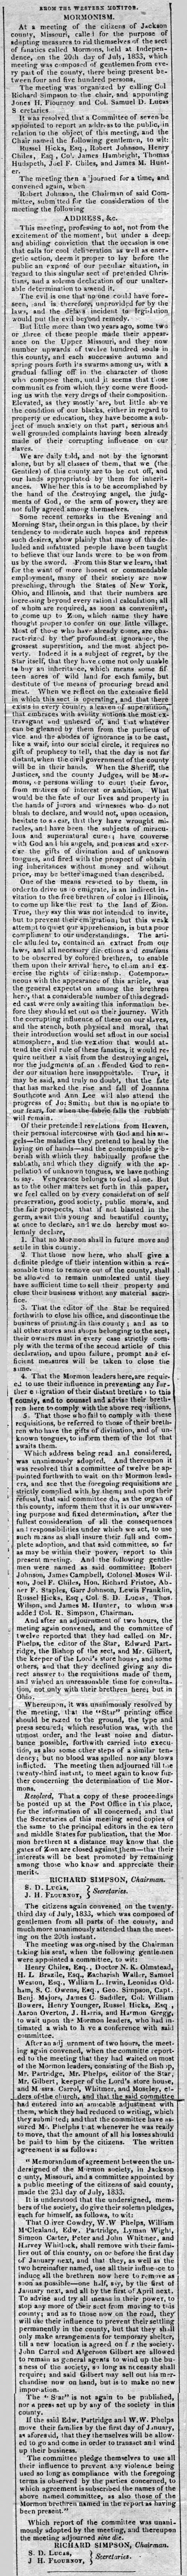 Western Monitor August 2, 1833